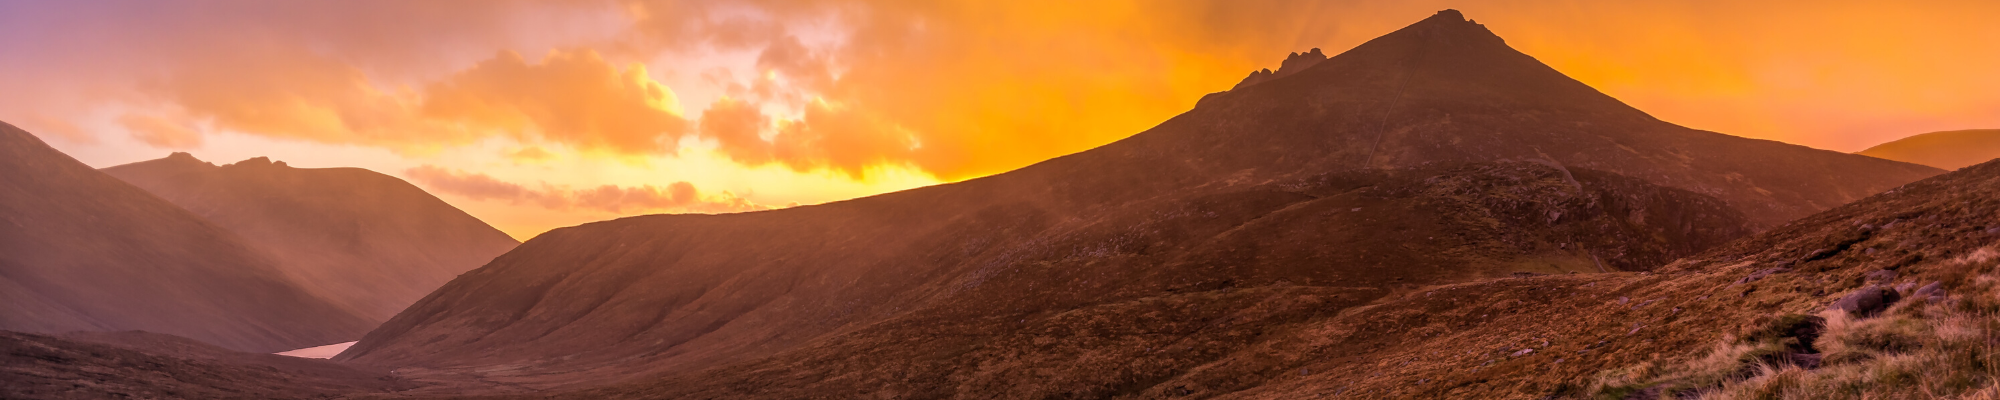 Mournes mountains